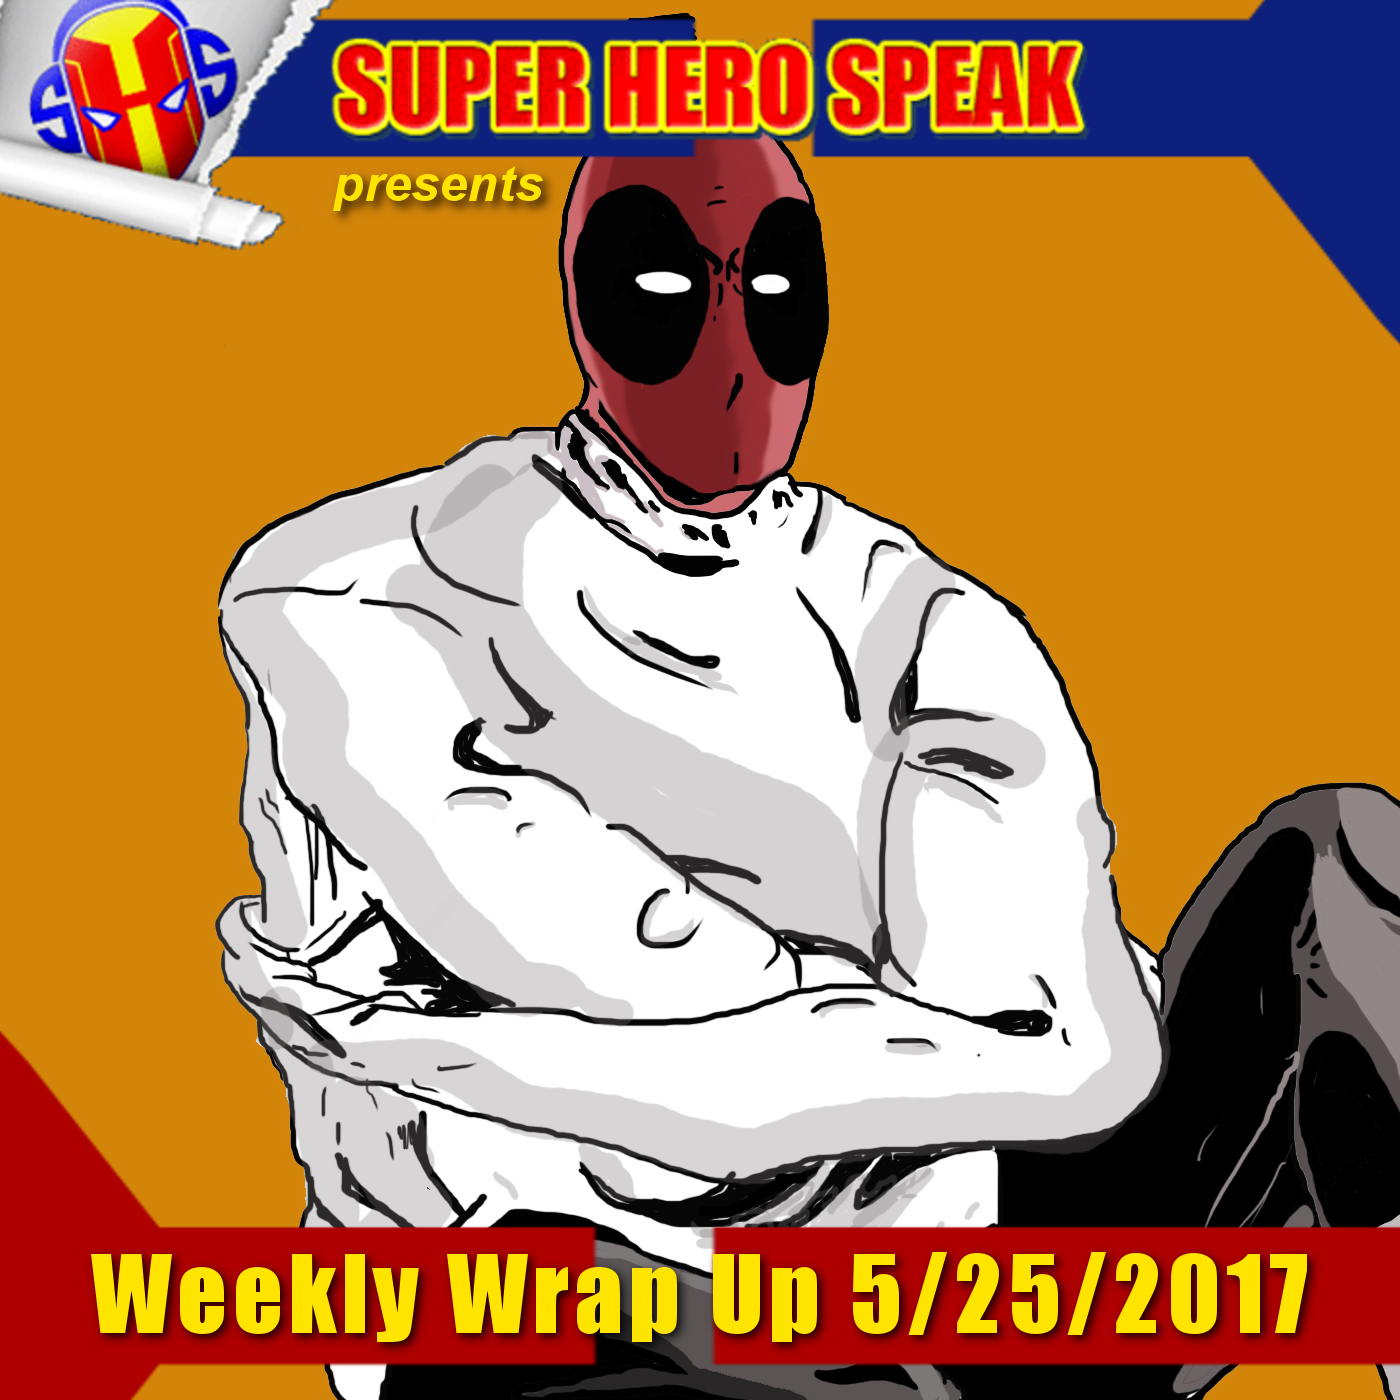 SHS Weekly Wrap Up 05/27/2017